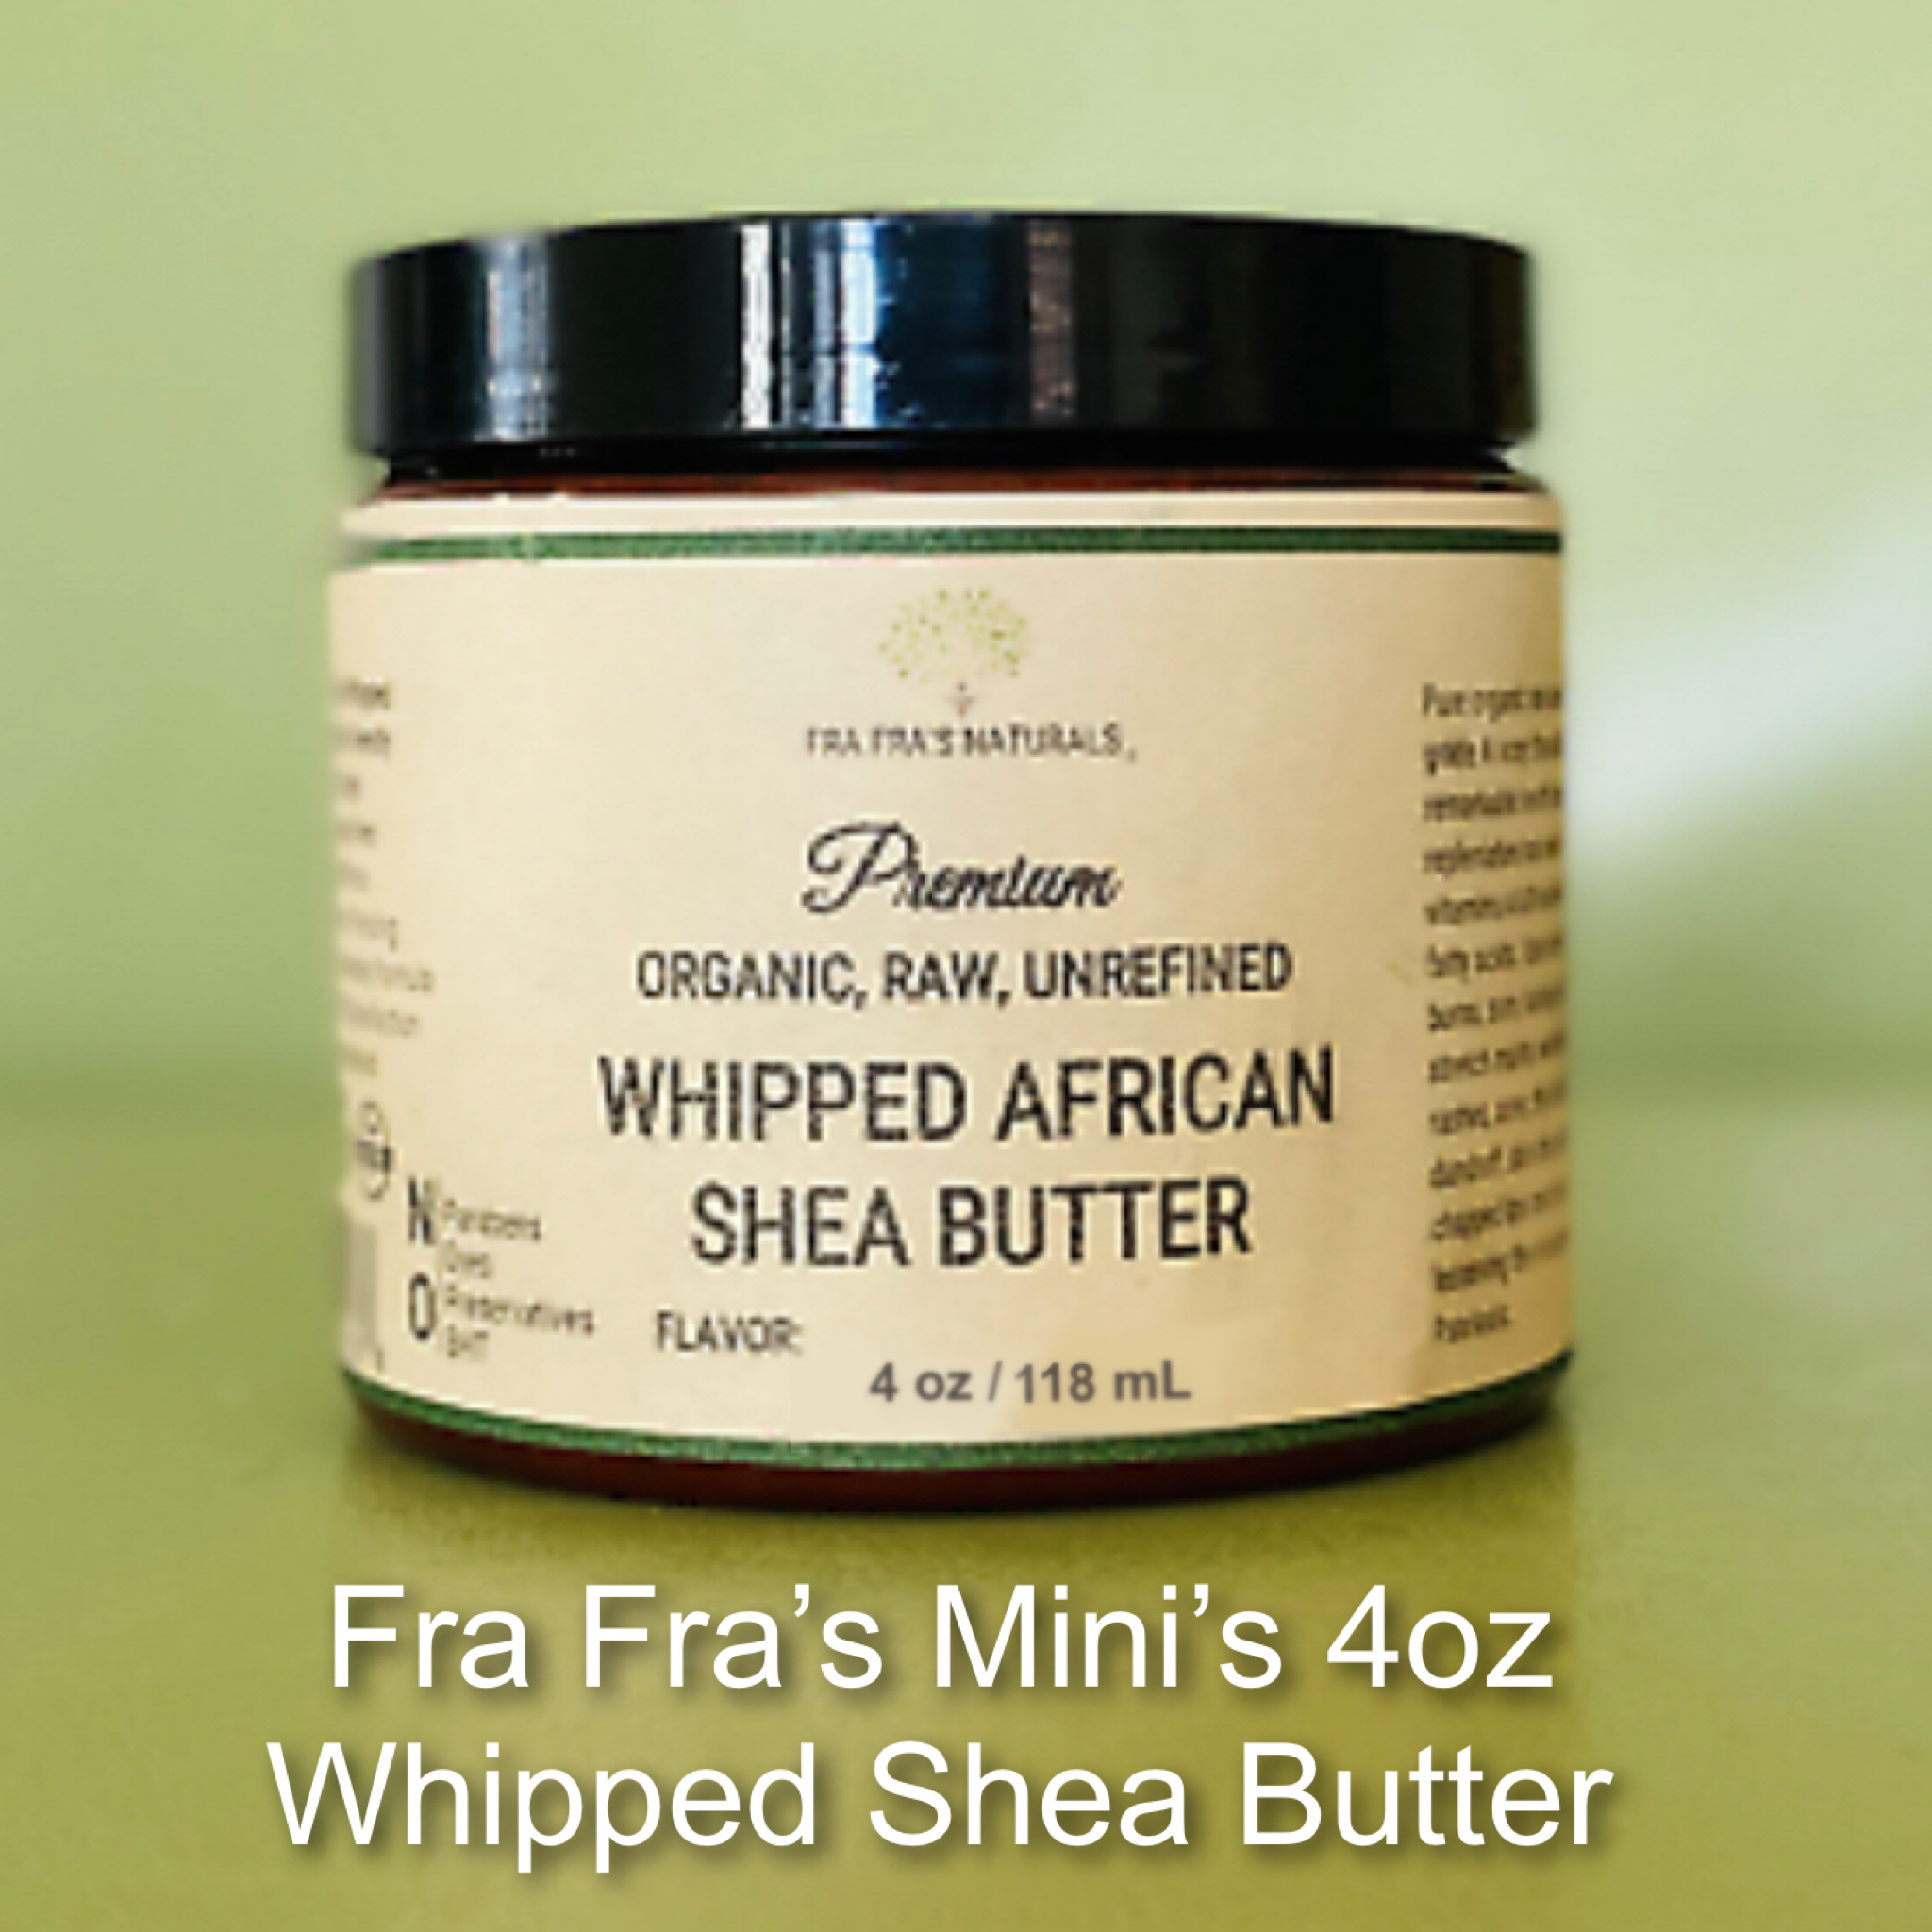 Fra Fra's Naturals | Premium Stretch Mark Shea Butter Blend